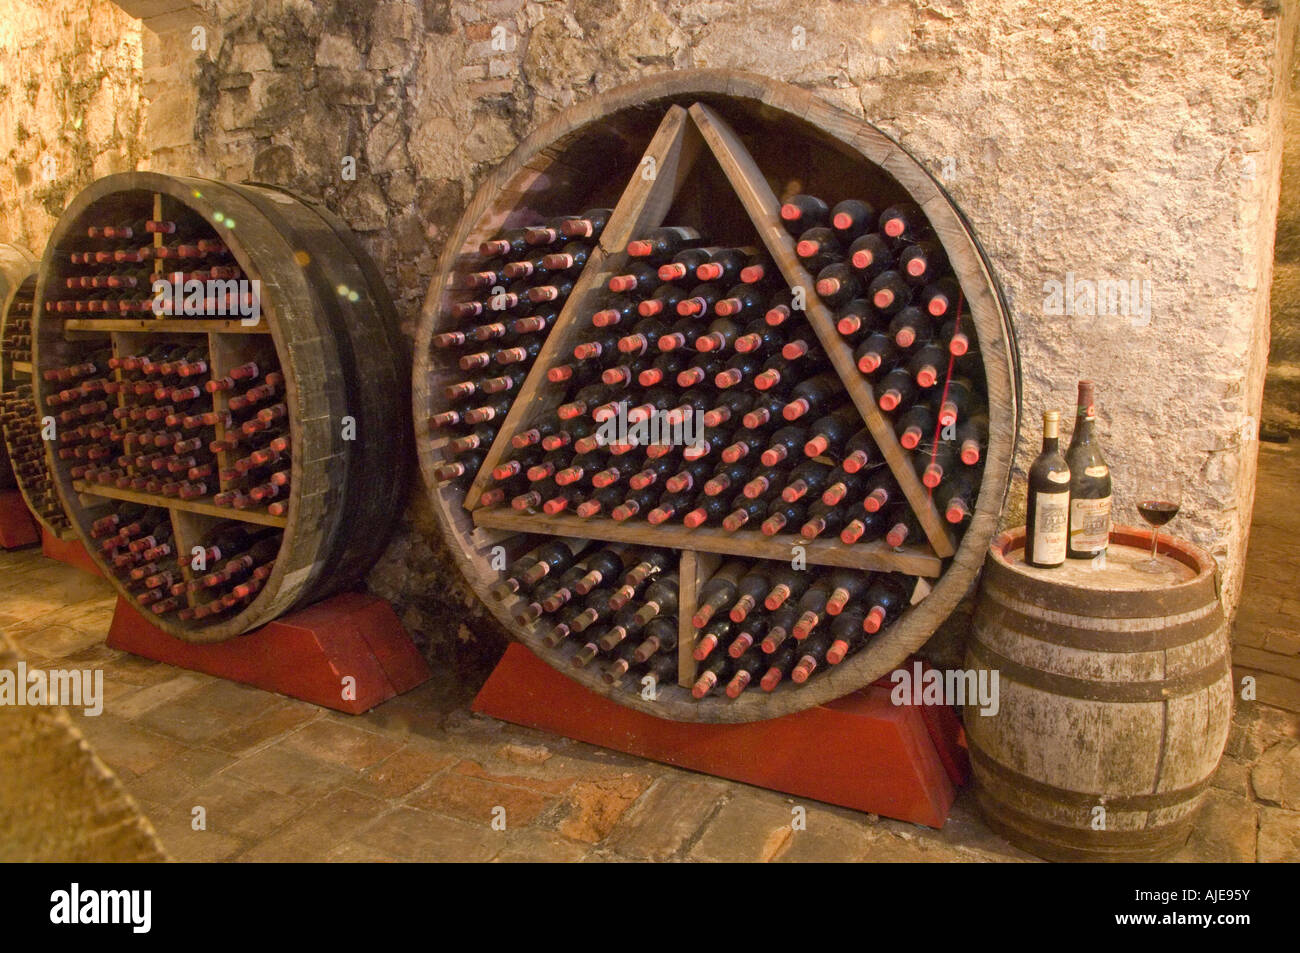 Inside a Chianti wine celler - Stock Image